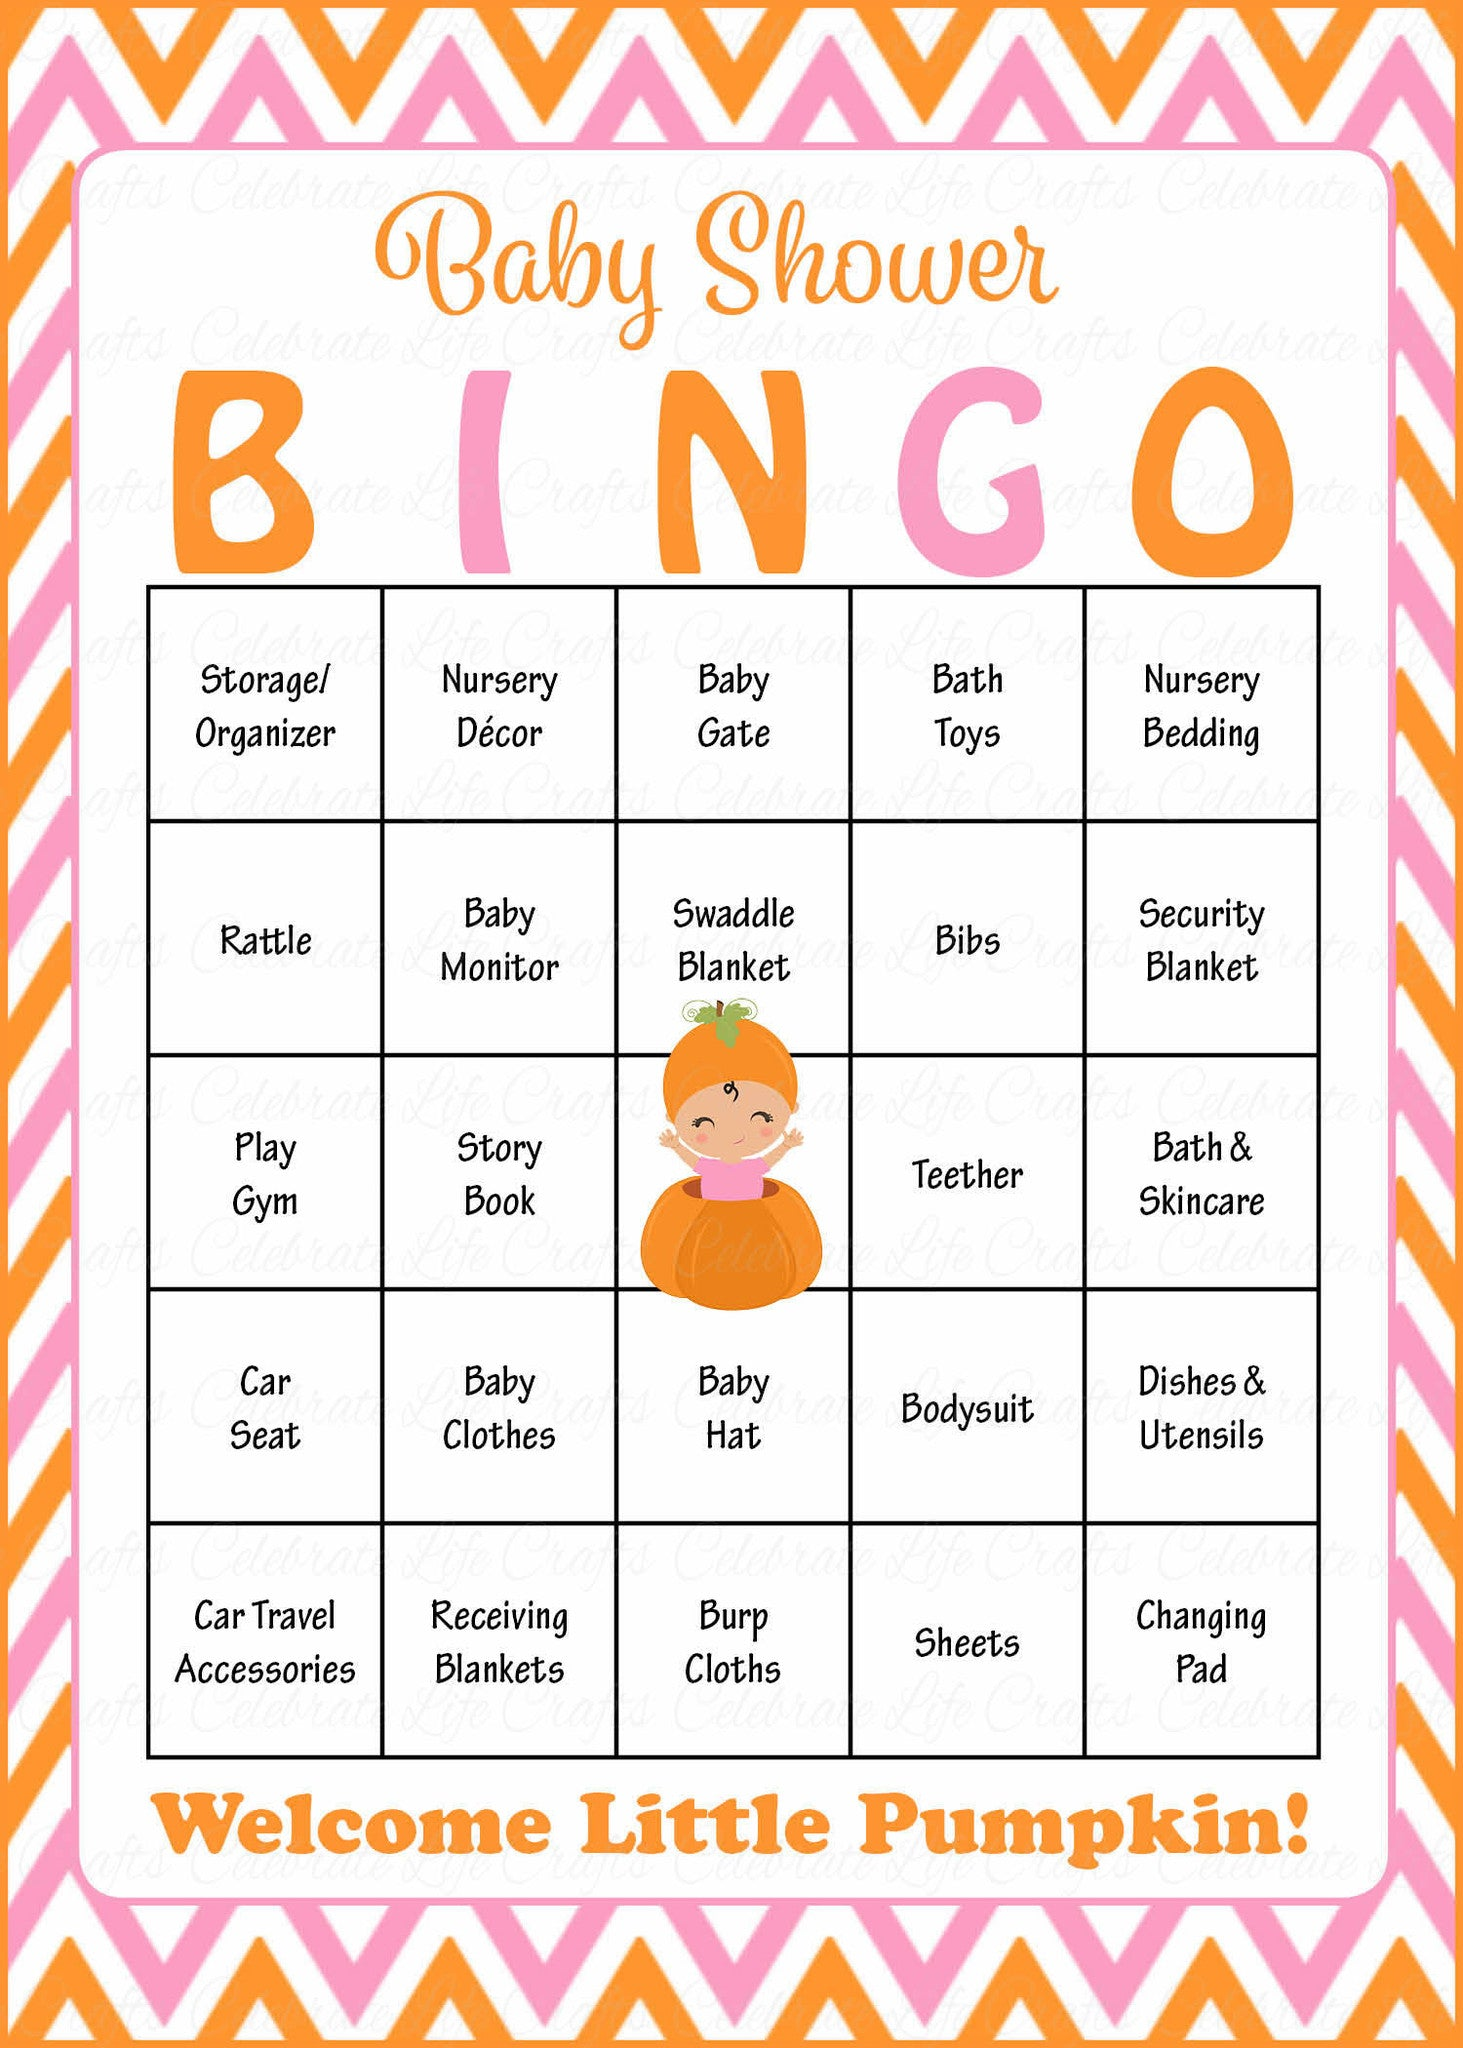 image relating to Printable Bingo Chips referred to as Tiny Pumpkin Boy or girl Shower Sport - Youngster Bingo Playing cards for Woman - Printable Obtain - Prefilled - Orange Crimson